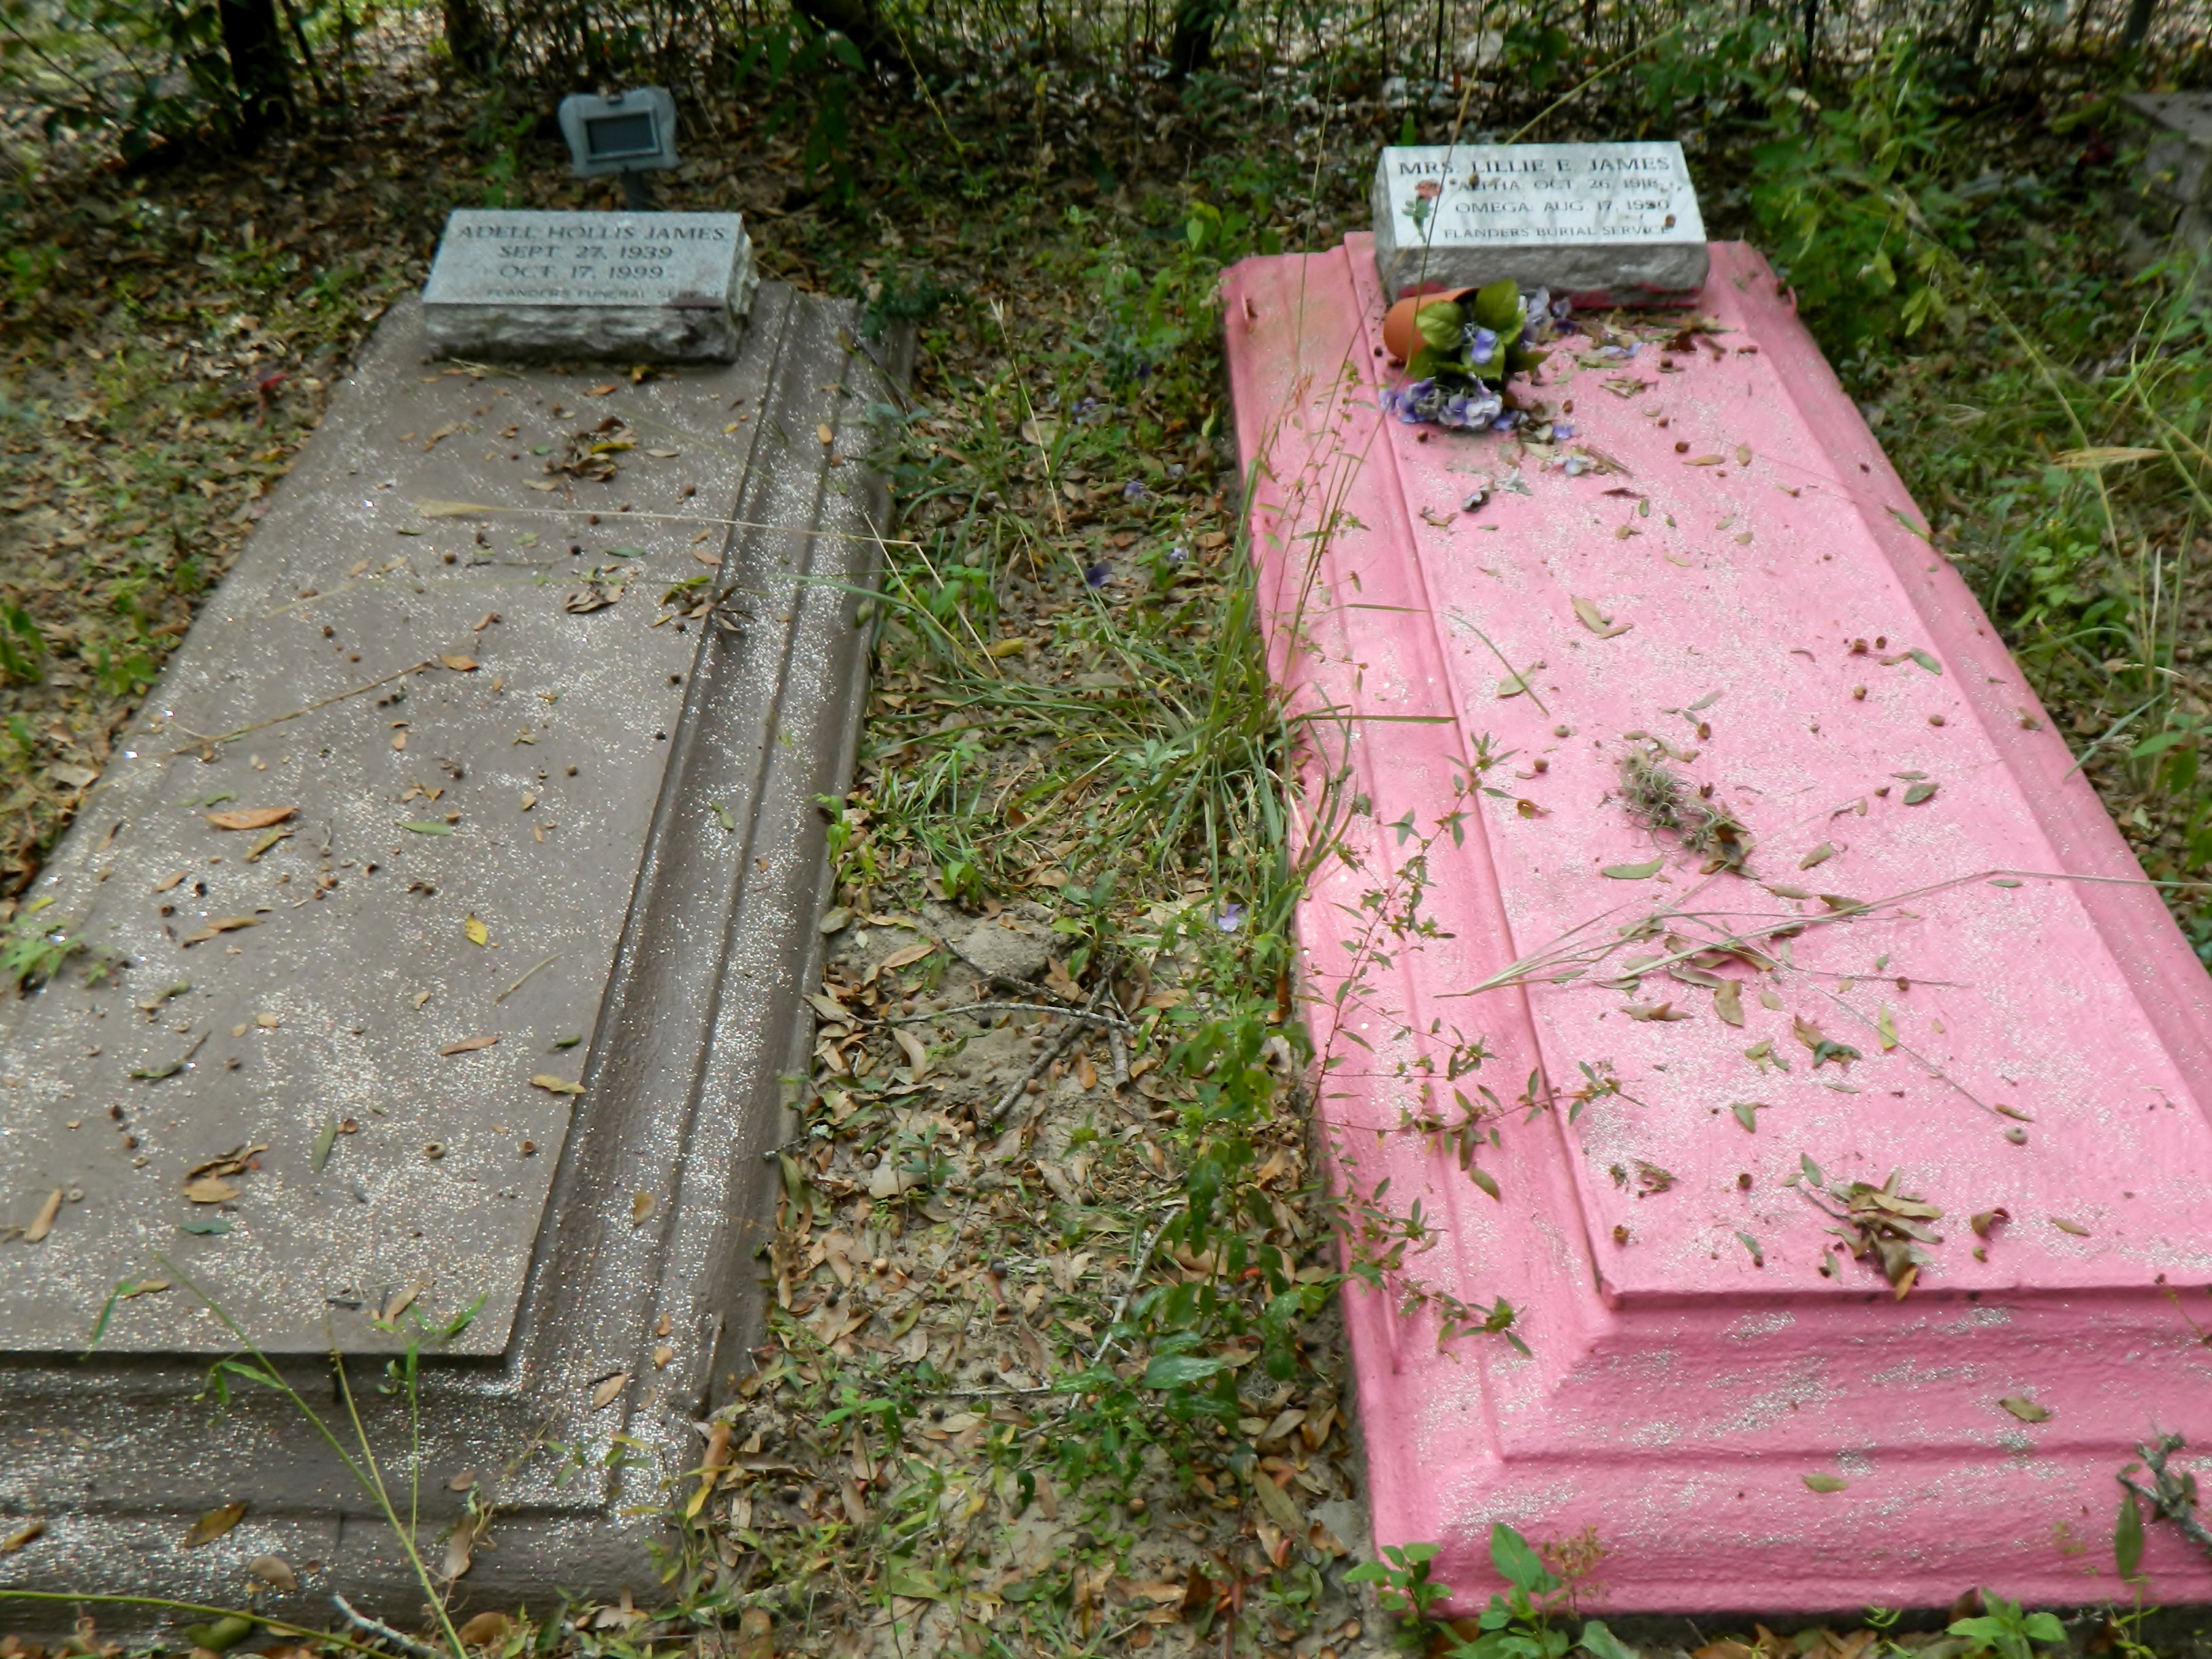 http://candlesmokechapel.files.wordpress.com/2012/11/purple-and-pink-graves.jpg